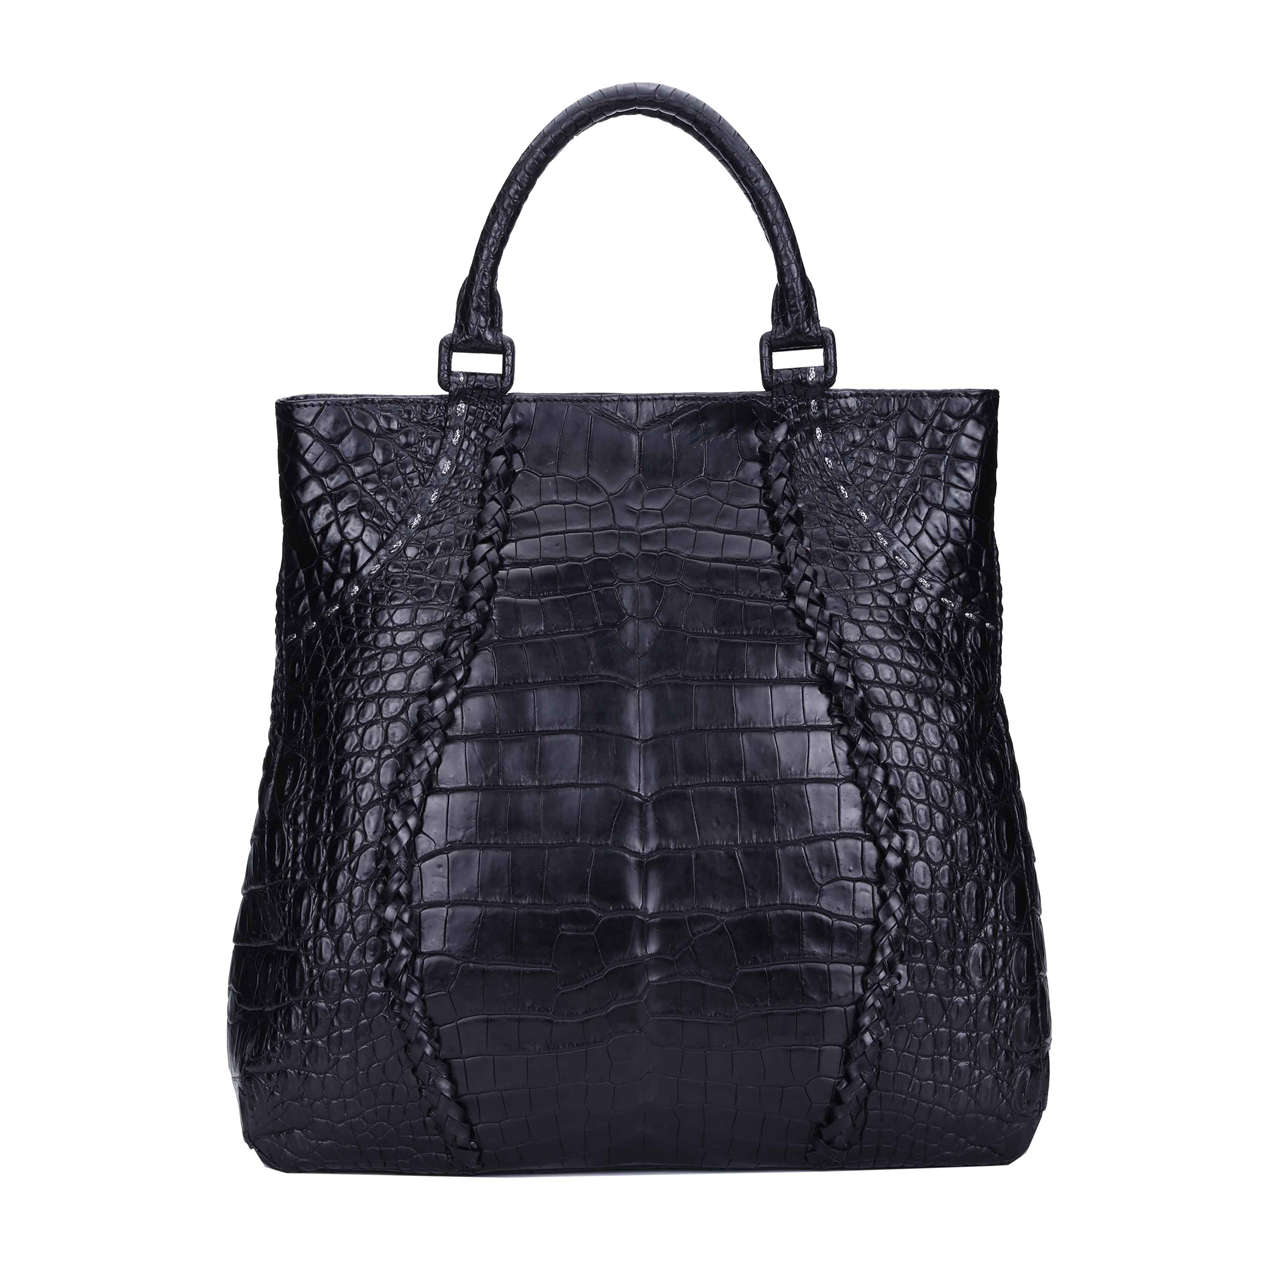 crocodile fashion handbags duffle for ladies-5